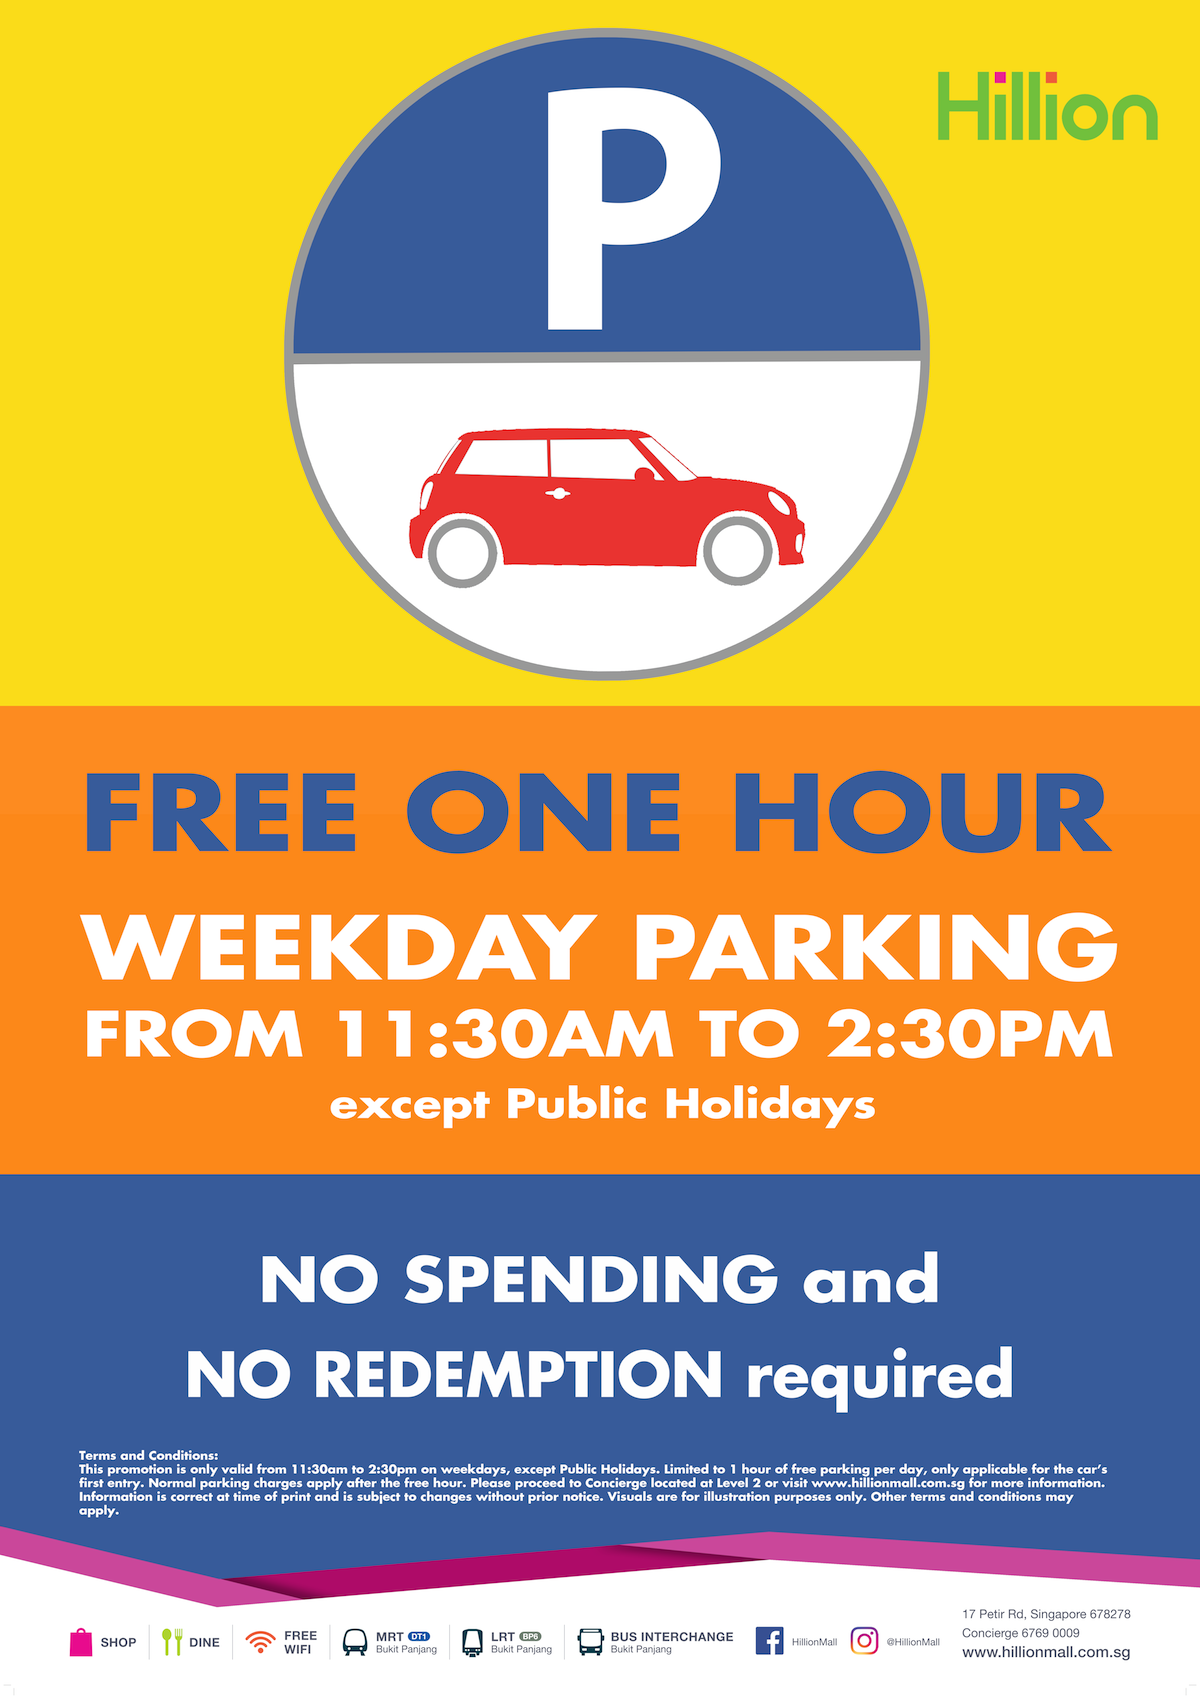 ee8fe4bfc From 2 July onwards, enjoy 1 hour of free* parking from 11:30am to 2:30pm,  on weekdays except Public Holidays! PLUS, no spending and no redemption  required!